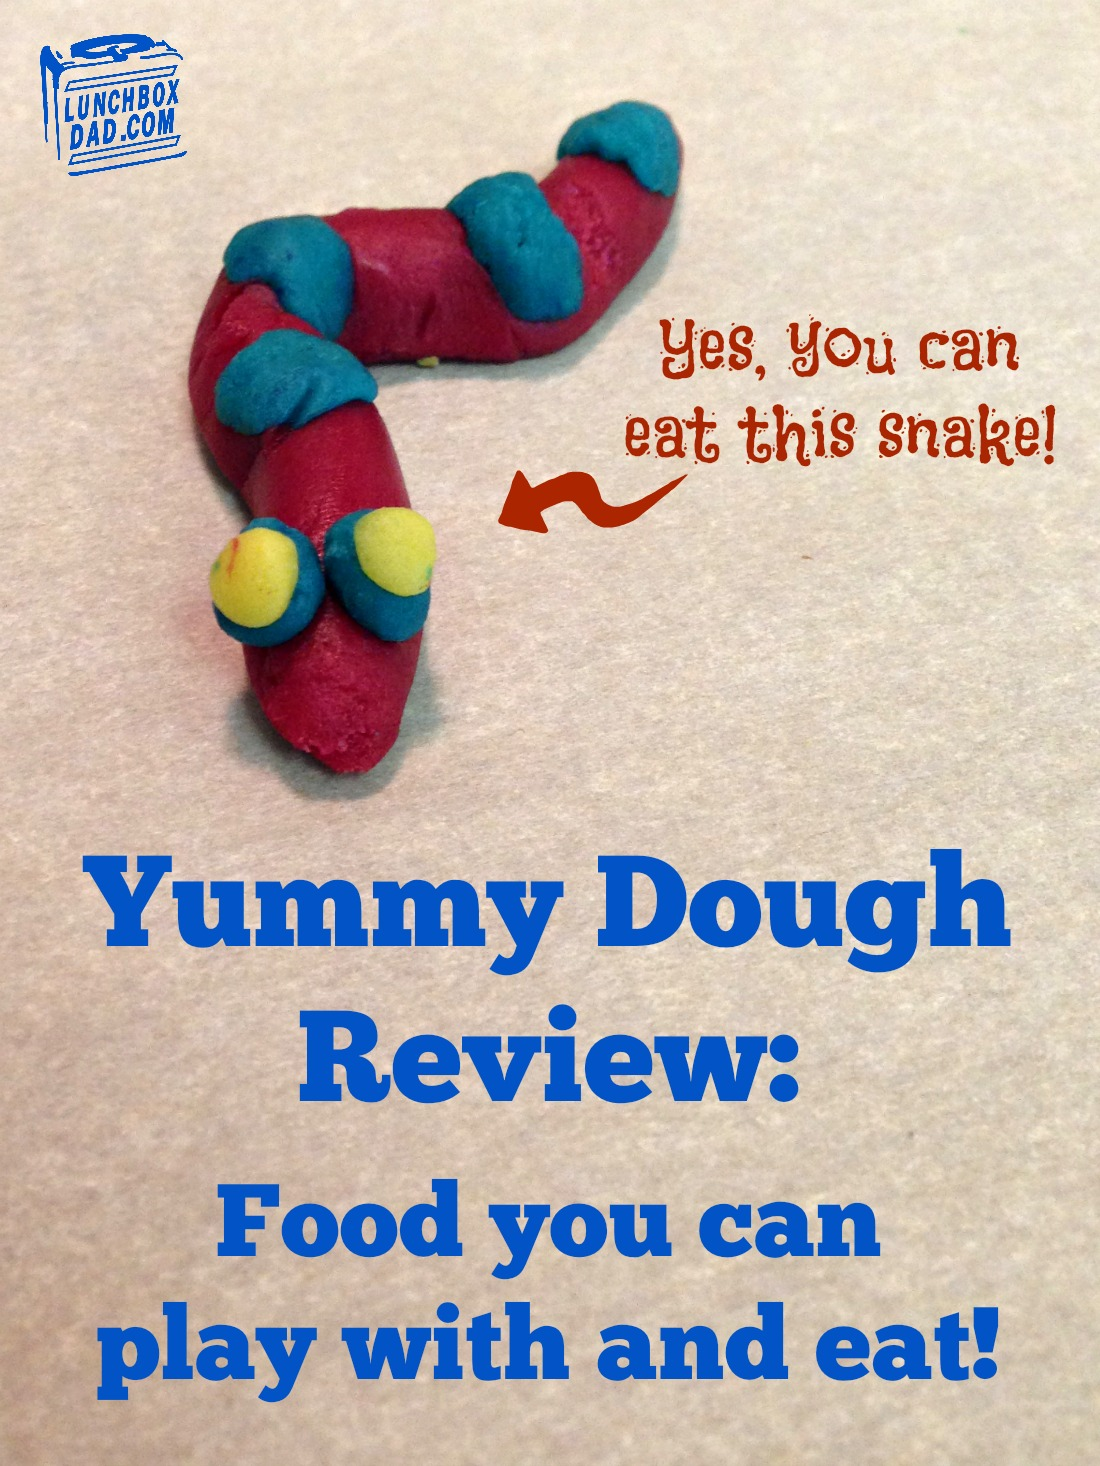 Yummy Dough Product Review